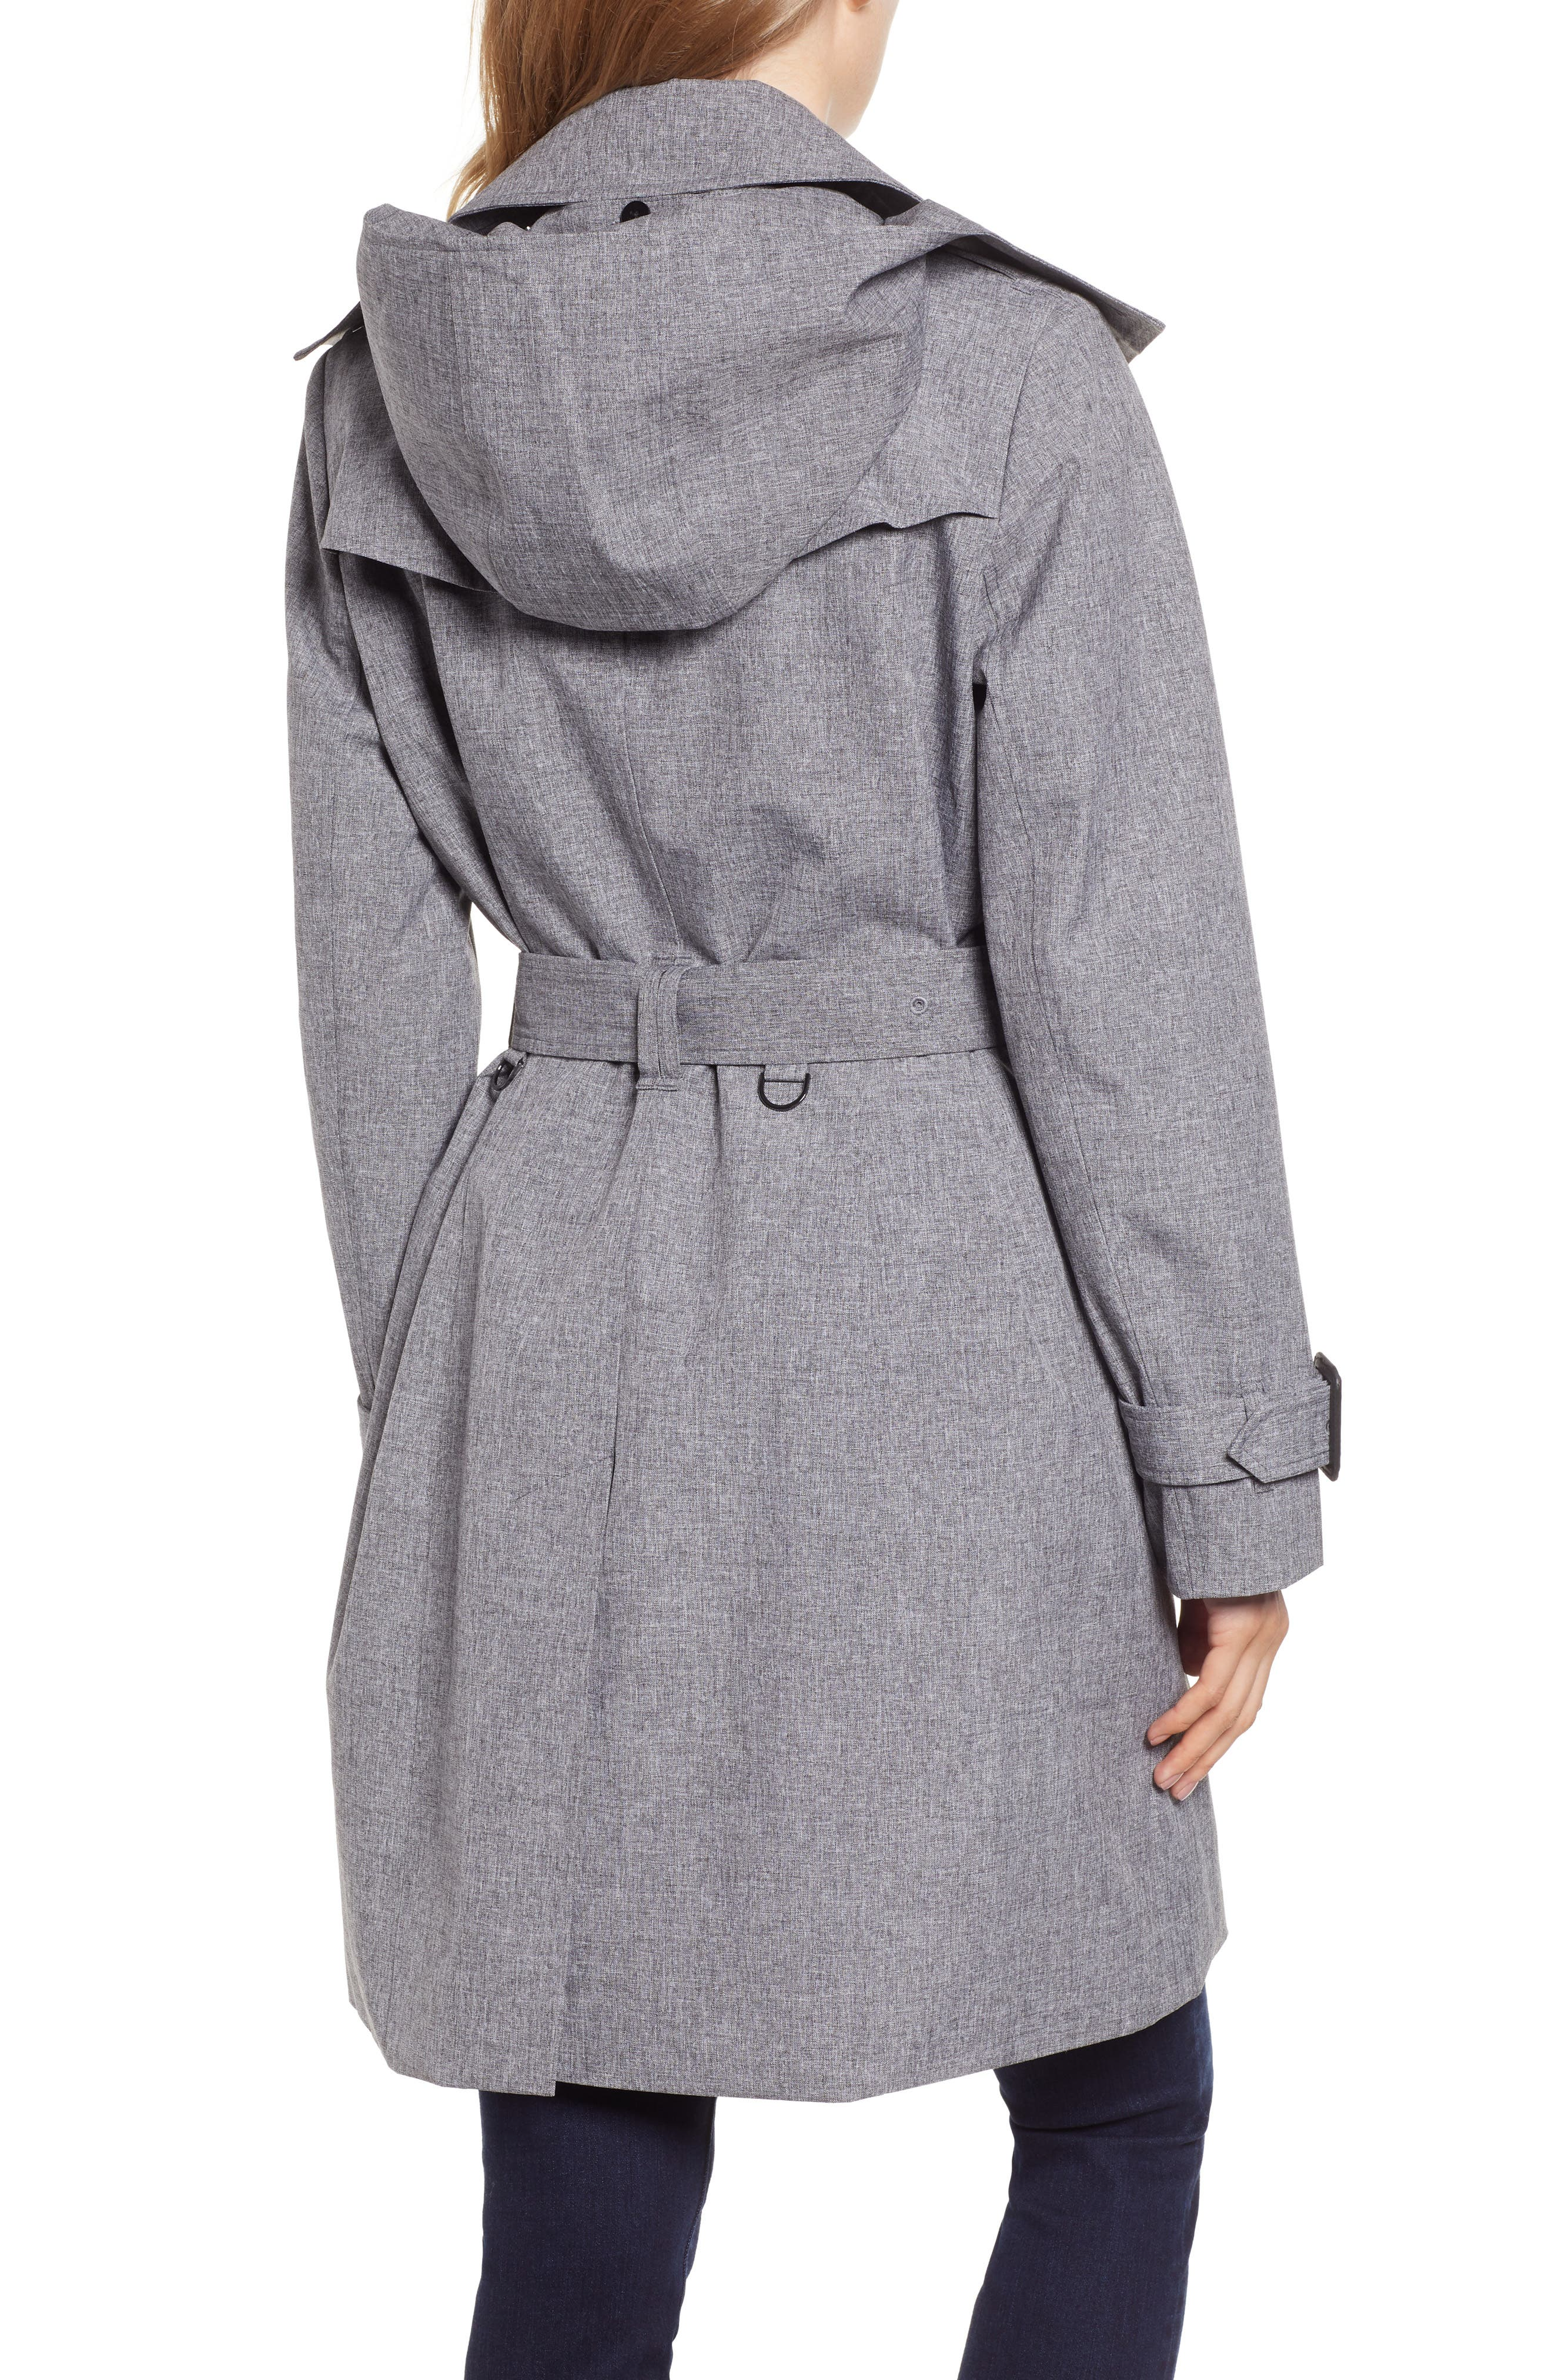 Double Breasted Trench Coat,                             Alternate thumbnail 2, color,                             CHARCOAL